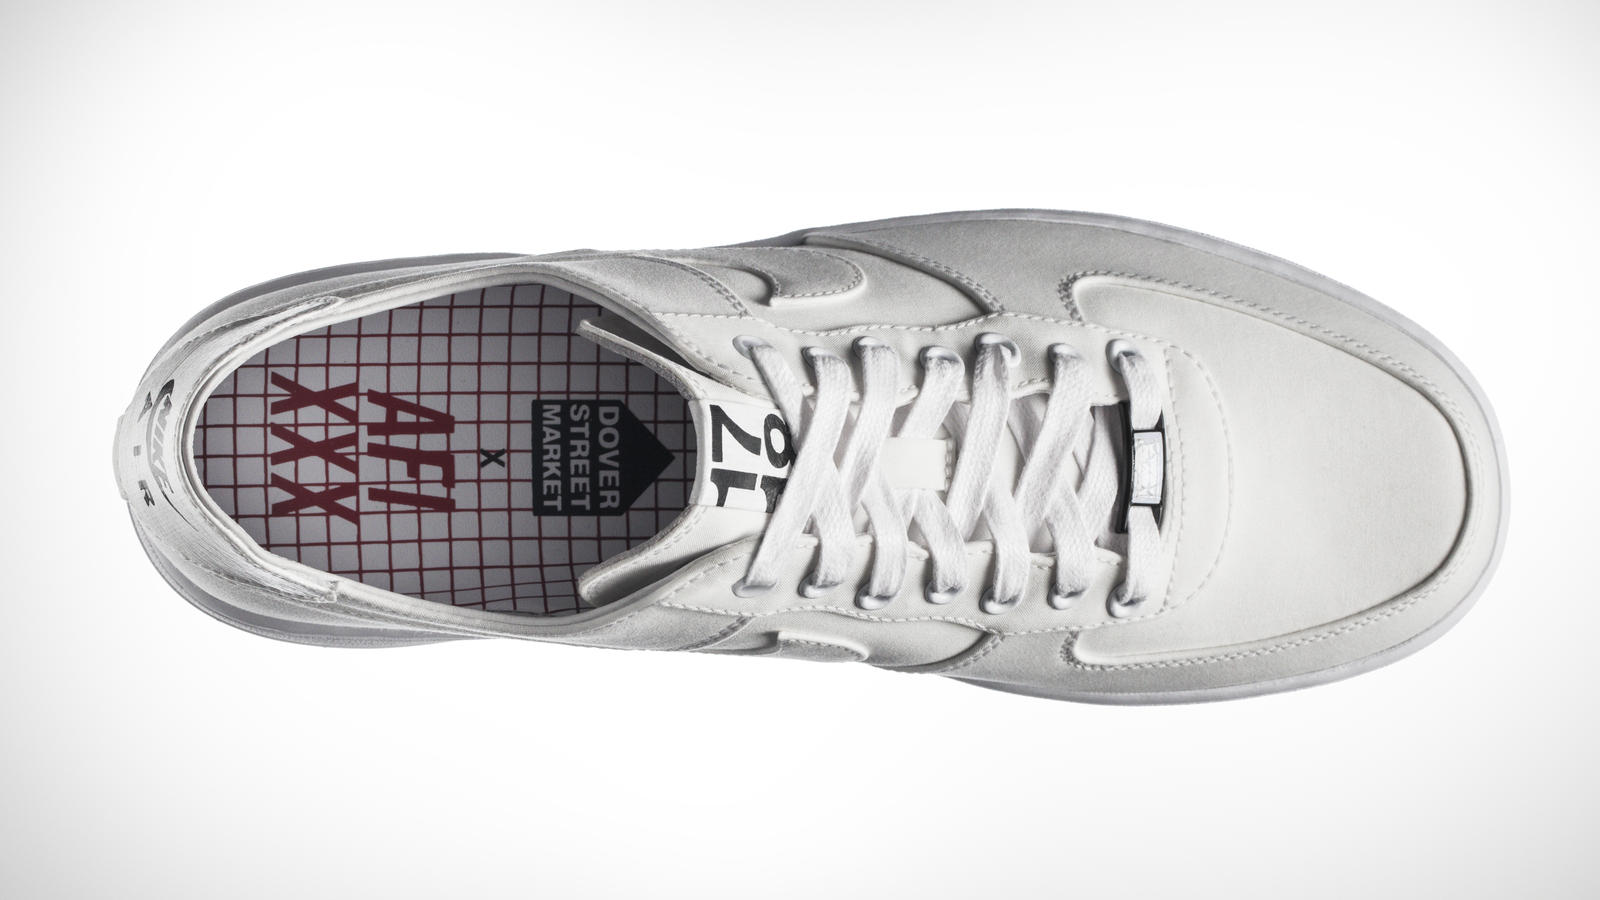 Dover Street Market x Nike Air Force 1